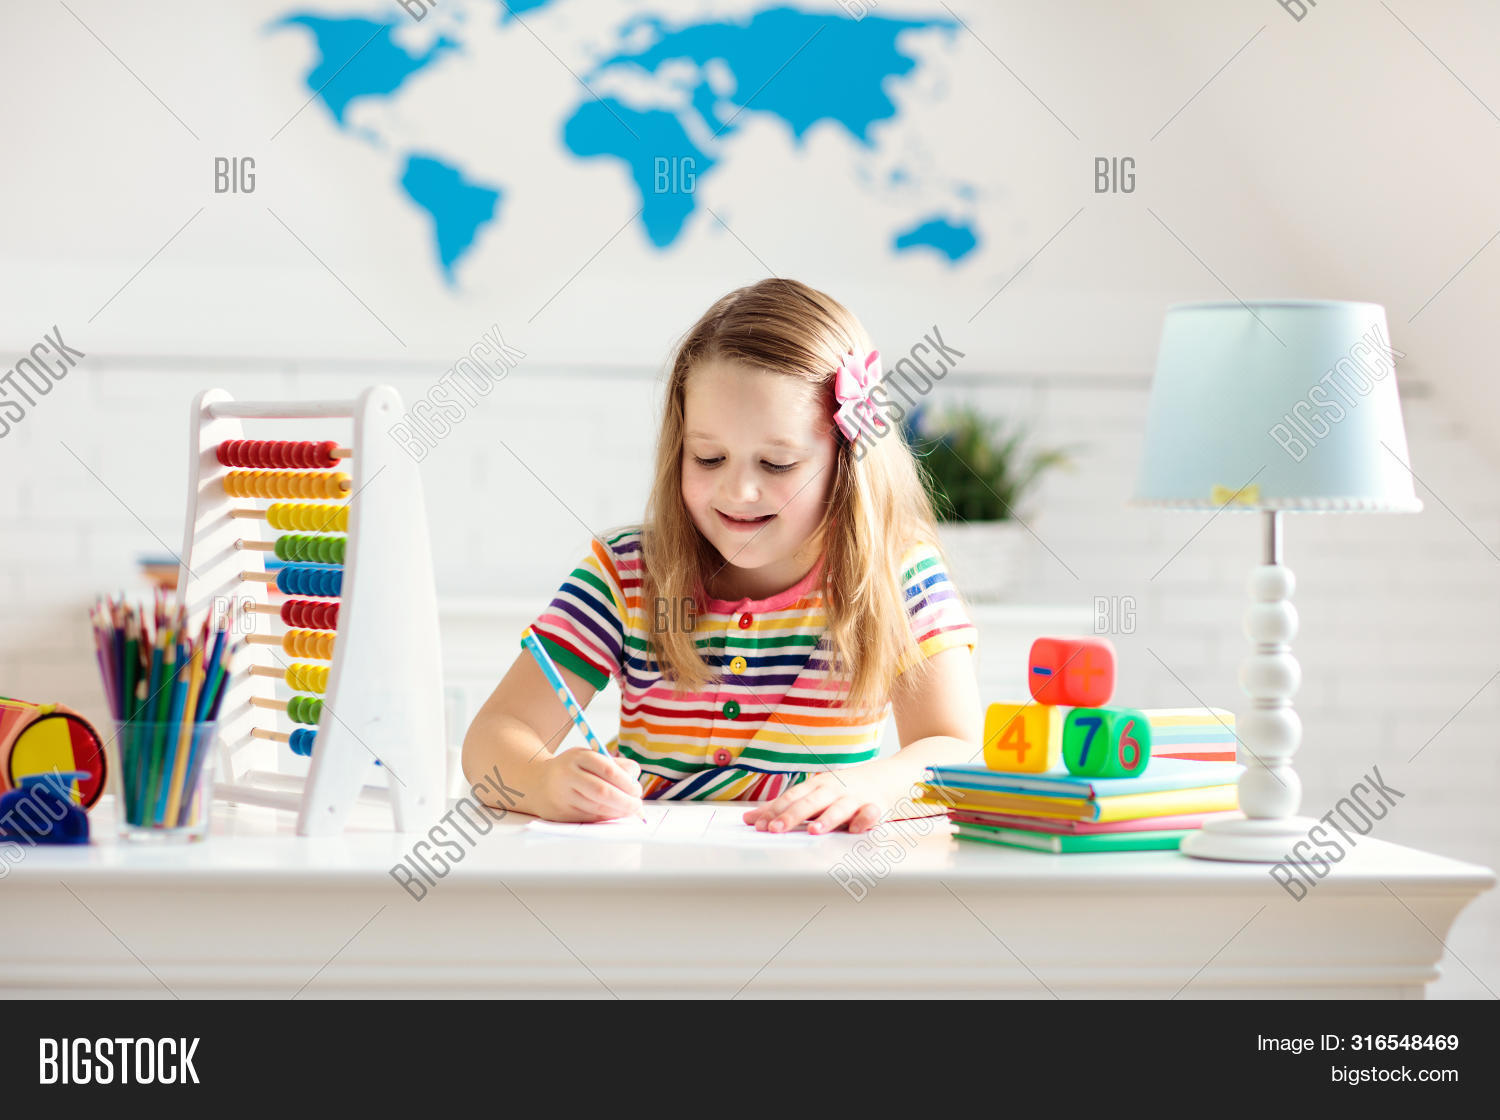 abacus,abc,back,backpack,bedroom,book,child,children,class,classroom,count,desk,education,elementary,english,eye,foundation,girl,glasses,globe,happy,home,homework,kid,kindergarten,language,learn,learning,lesson,letter,math,nursery,paint,preschool,preschooler,primary,pupil,read,room,school,spectacles,student,study,to,uk,uniform,wear,write,year